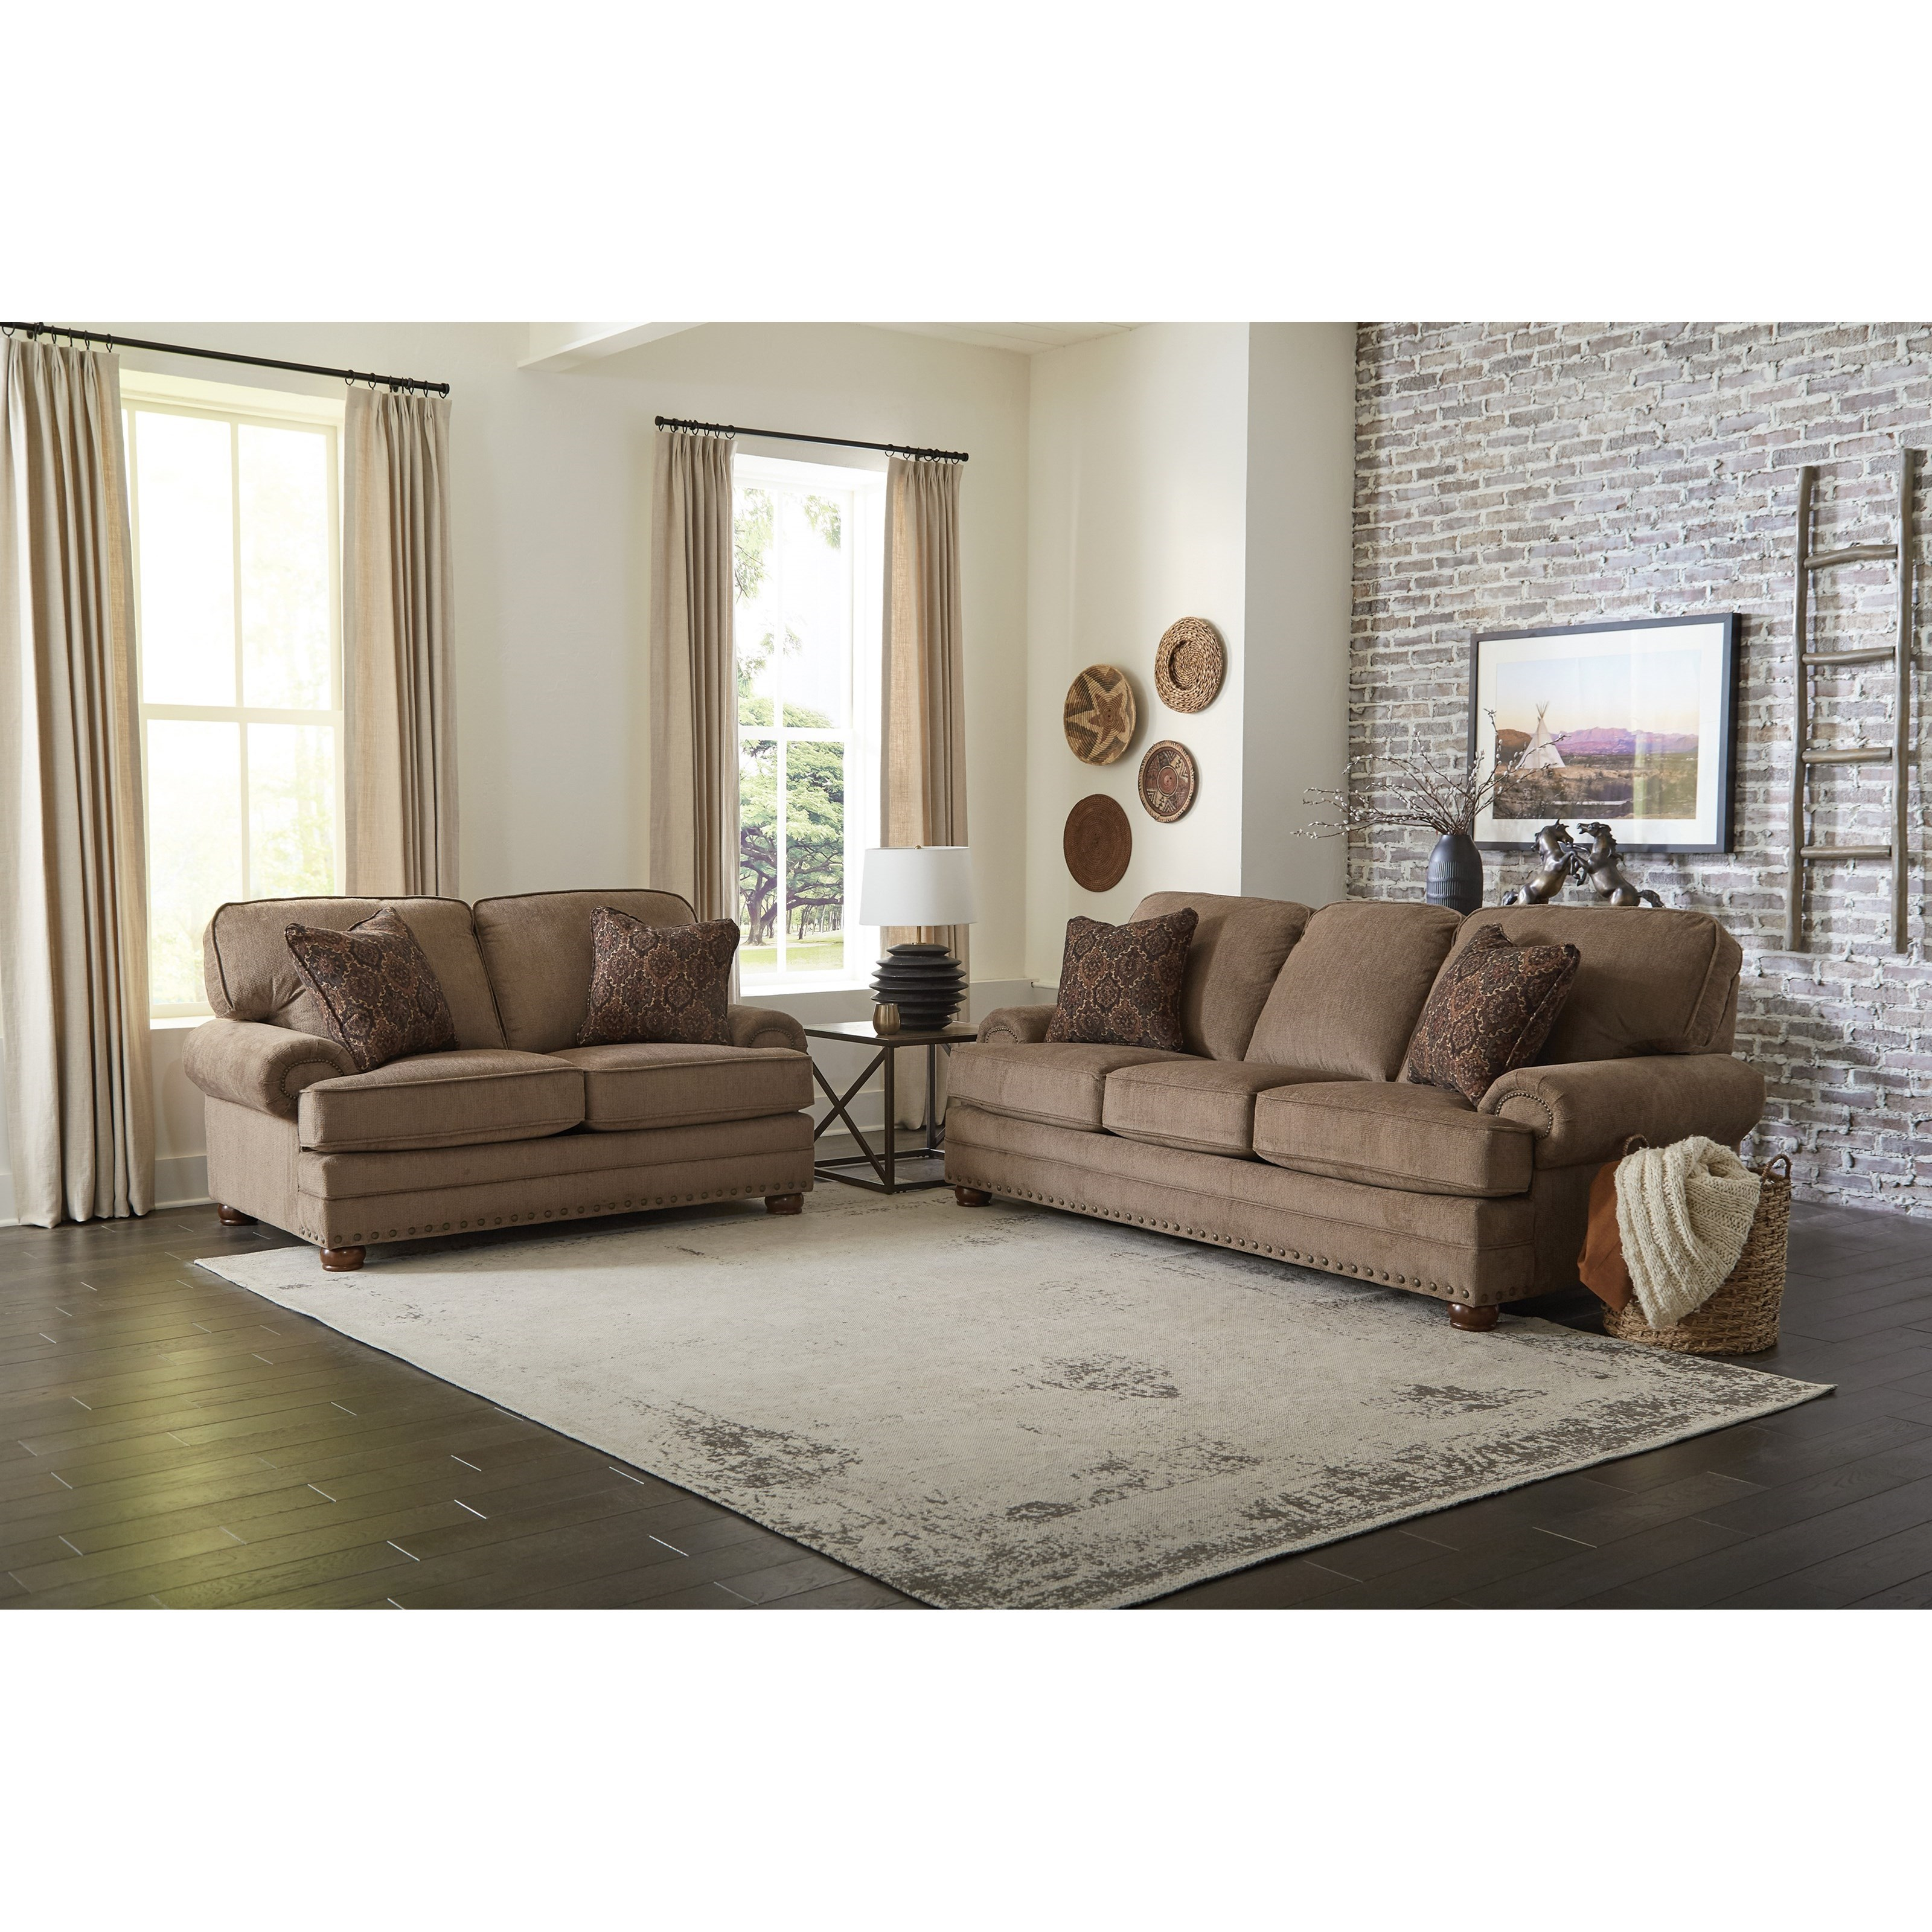 Singletary Living Room Group by Jackson Furniture at Standard Furniture